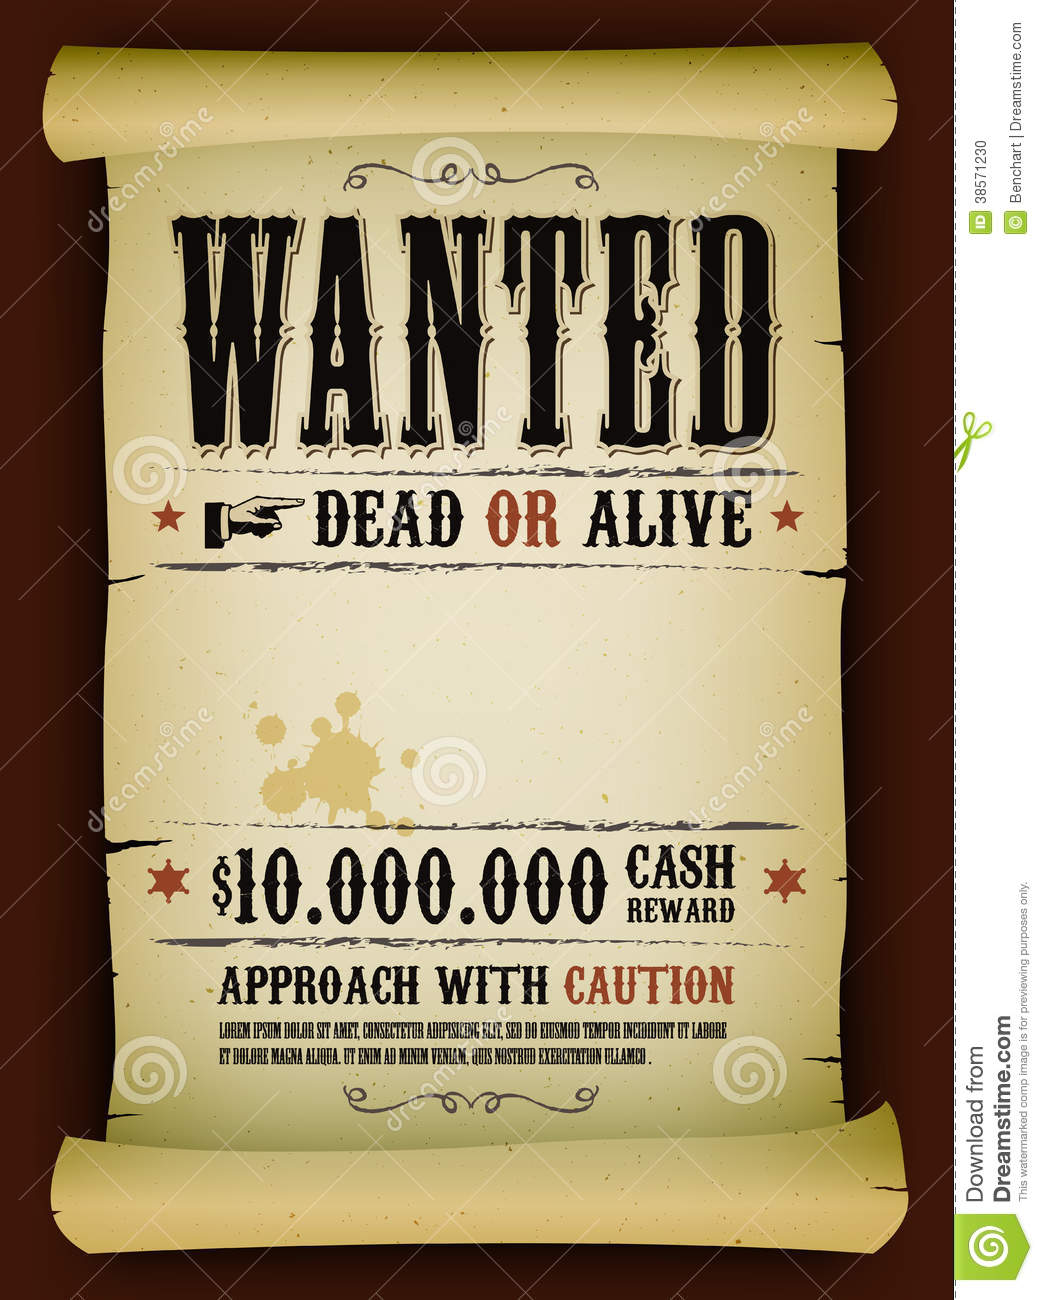 Wanted vintage poster on parchment stock vector image for Wanted dead or alive poster template free